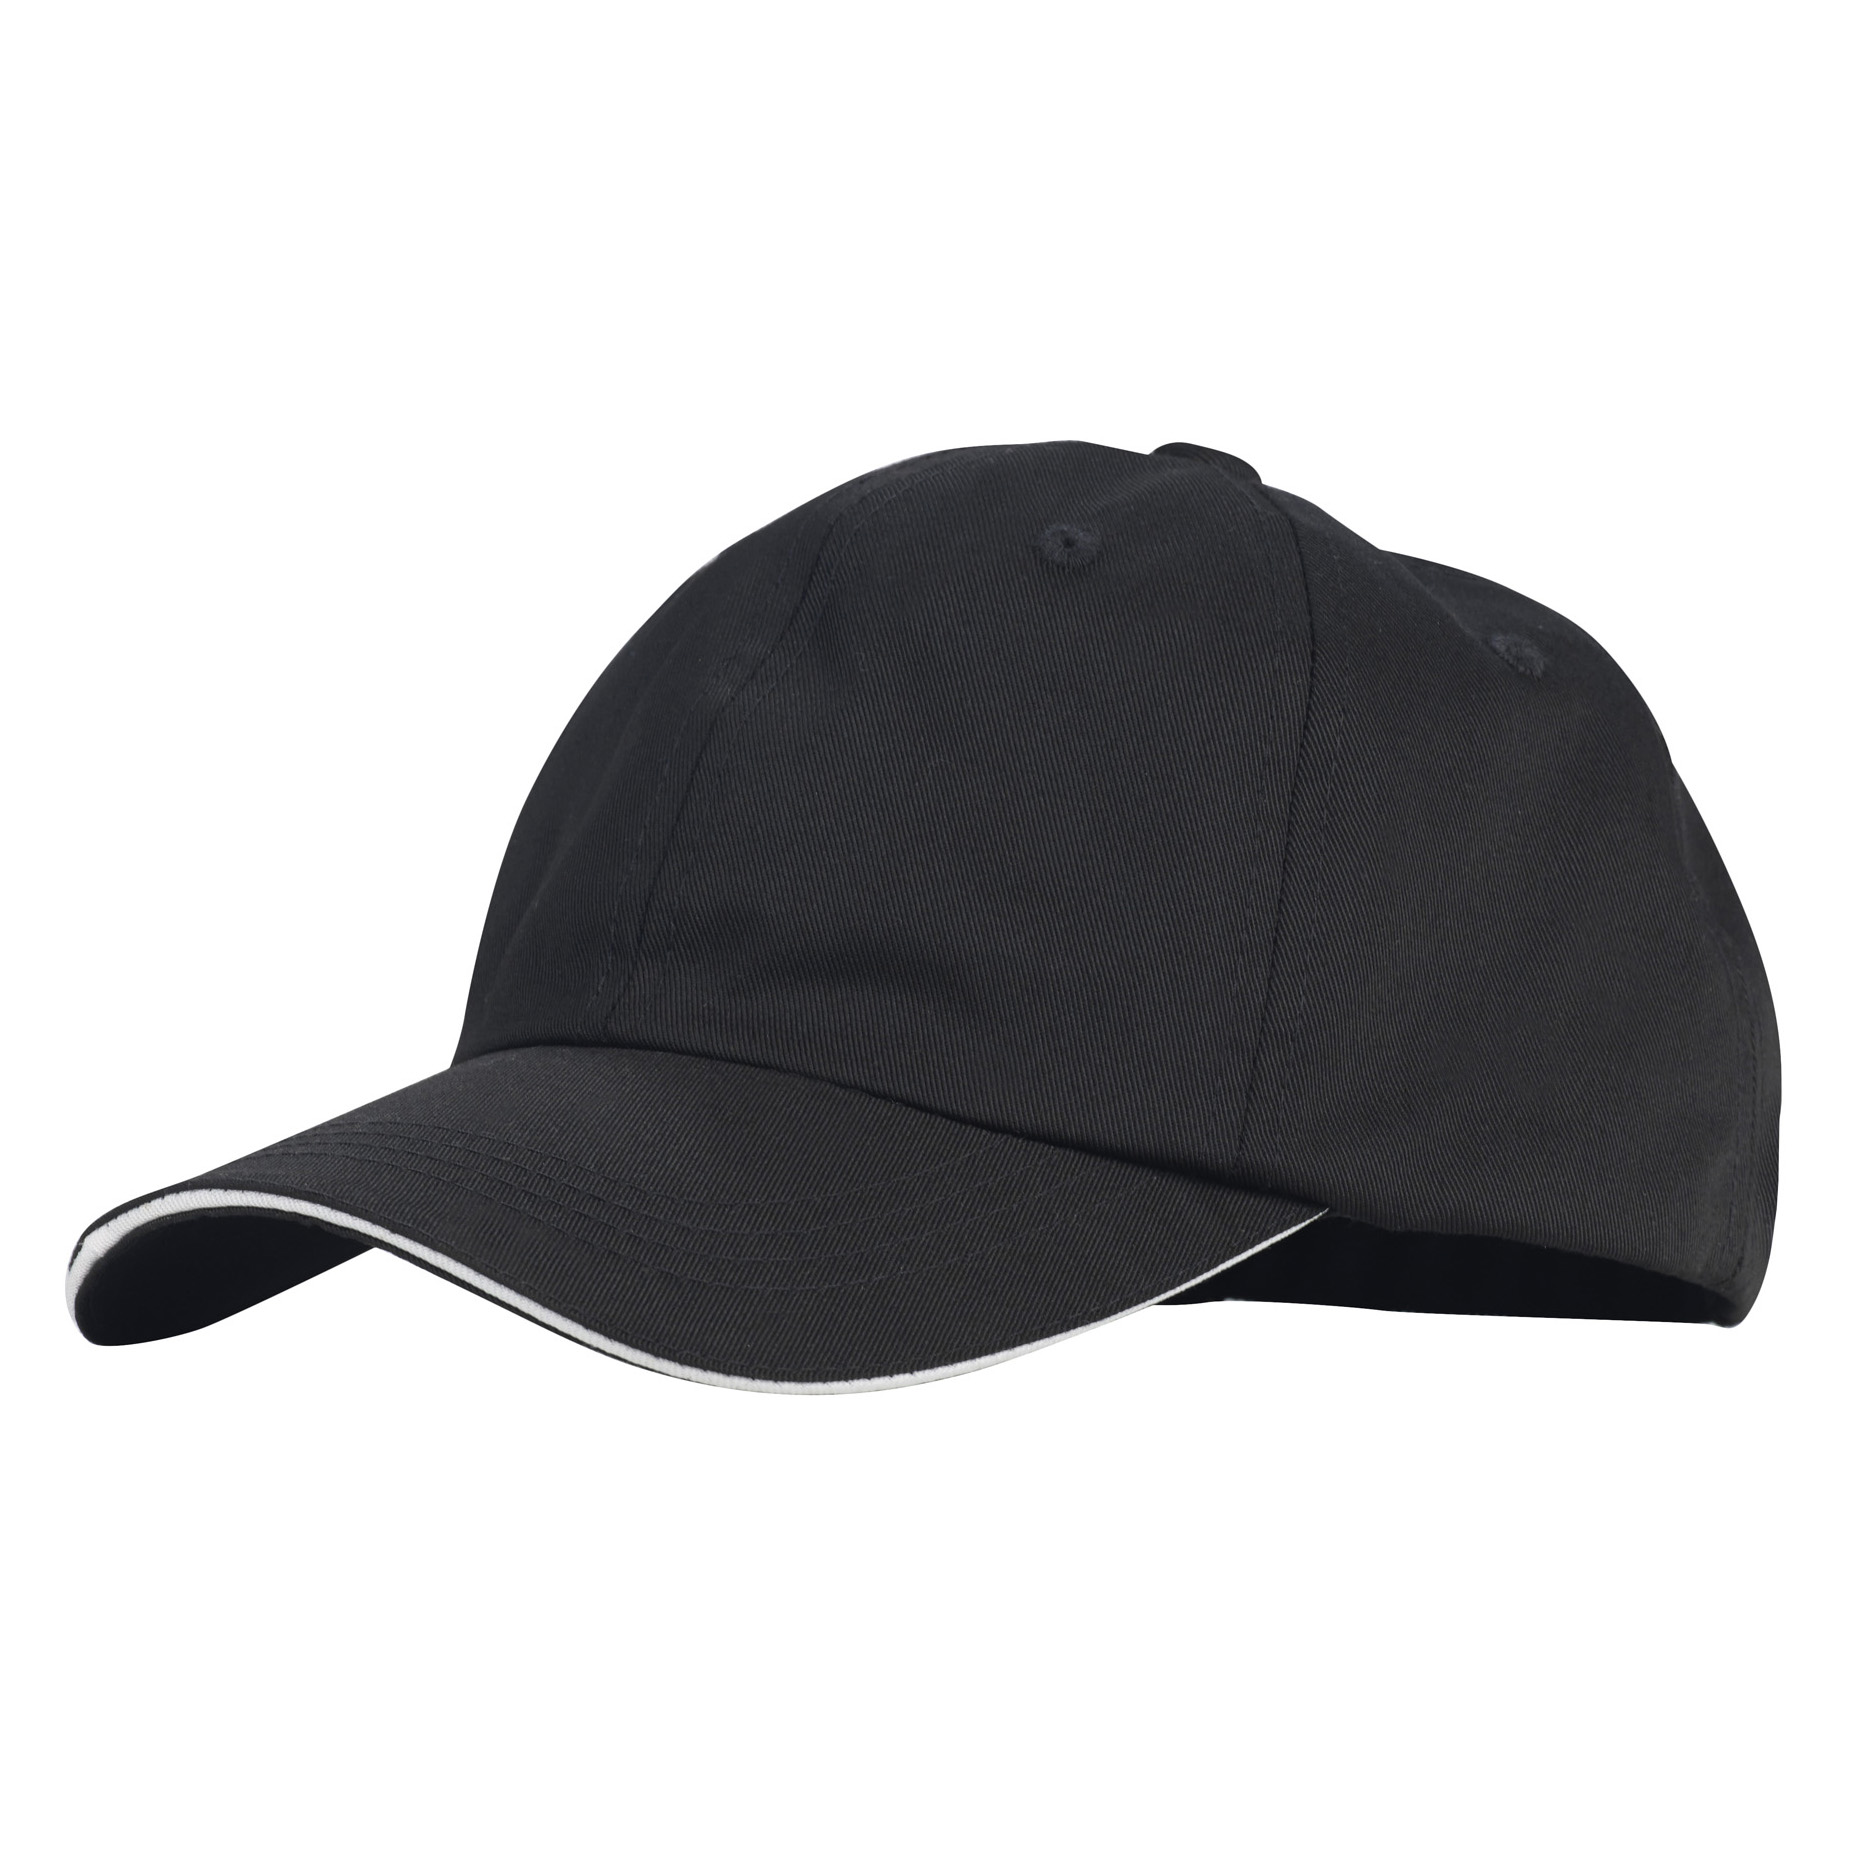 Winco CHBC-4BK chef's hat